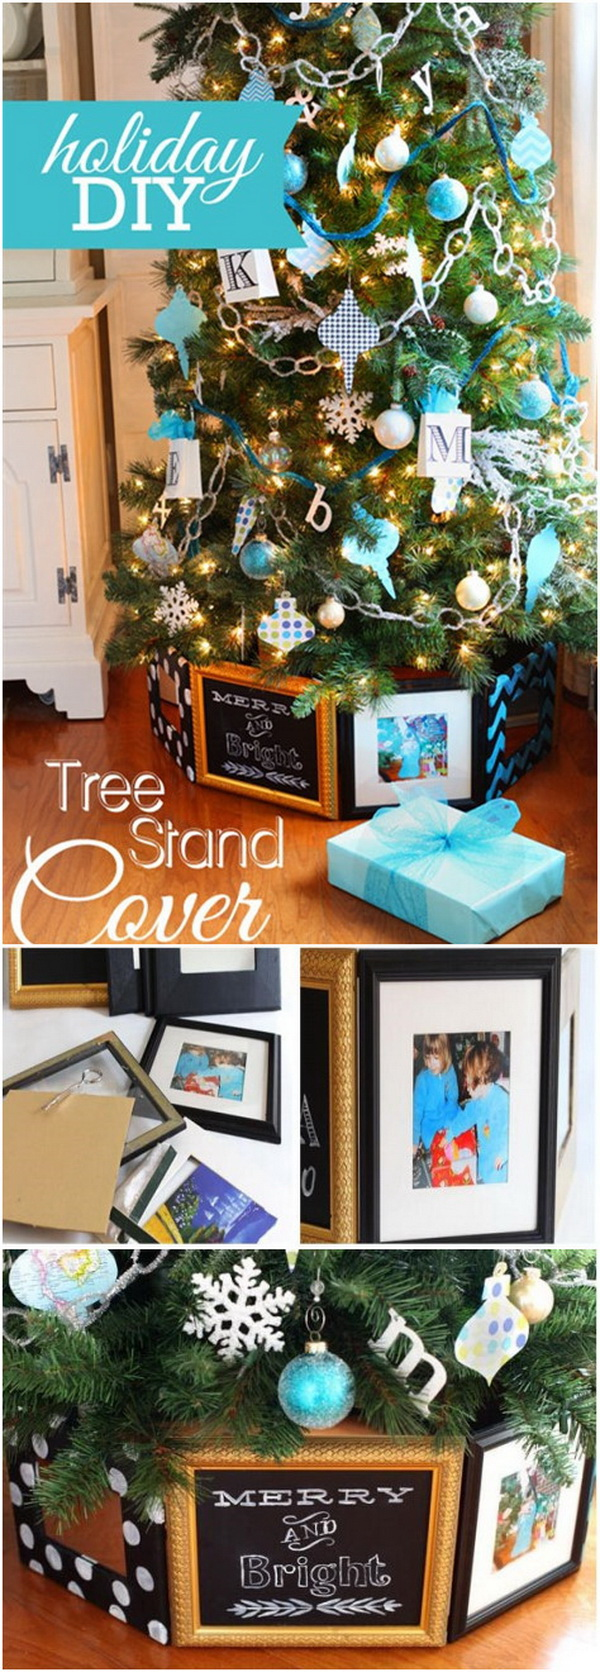 Christmas Tree Stand Cover Using Frames.